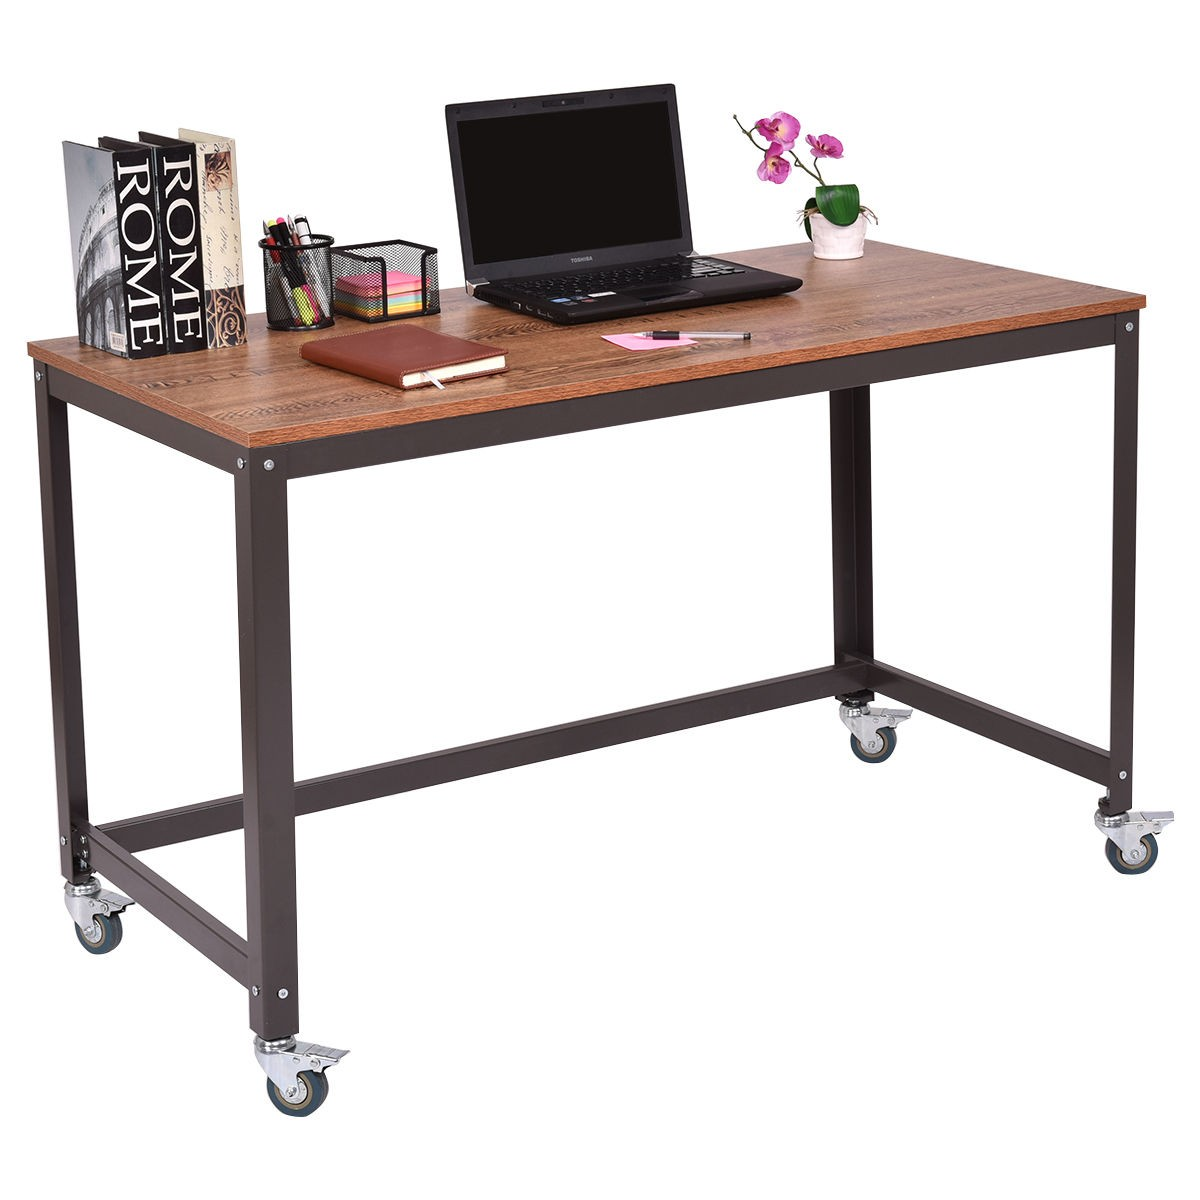 puter Desk With Wheels puter Desks With Wheels